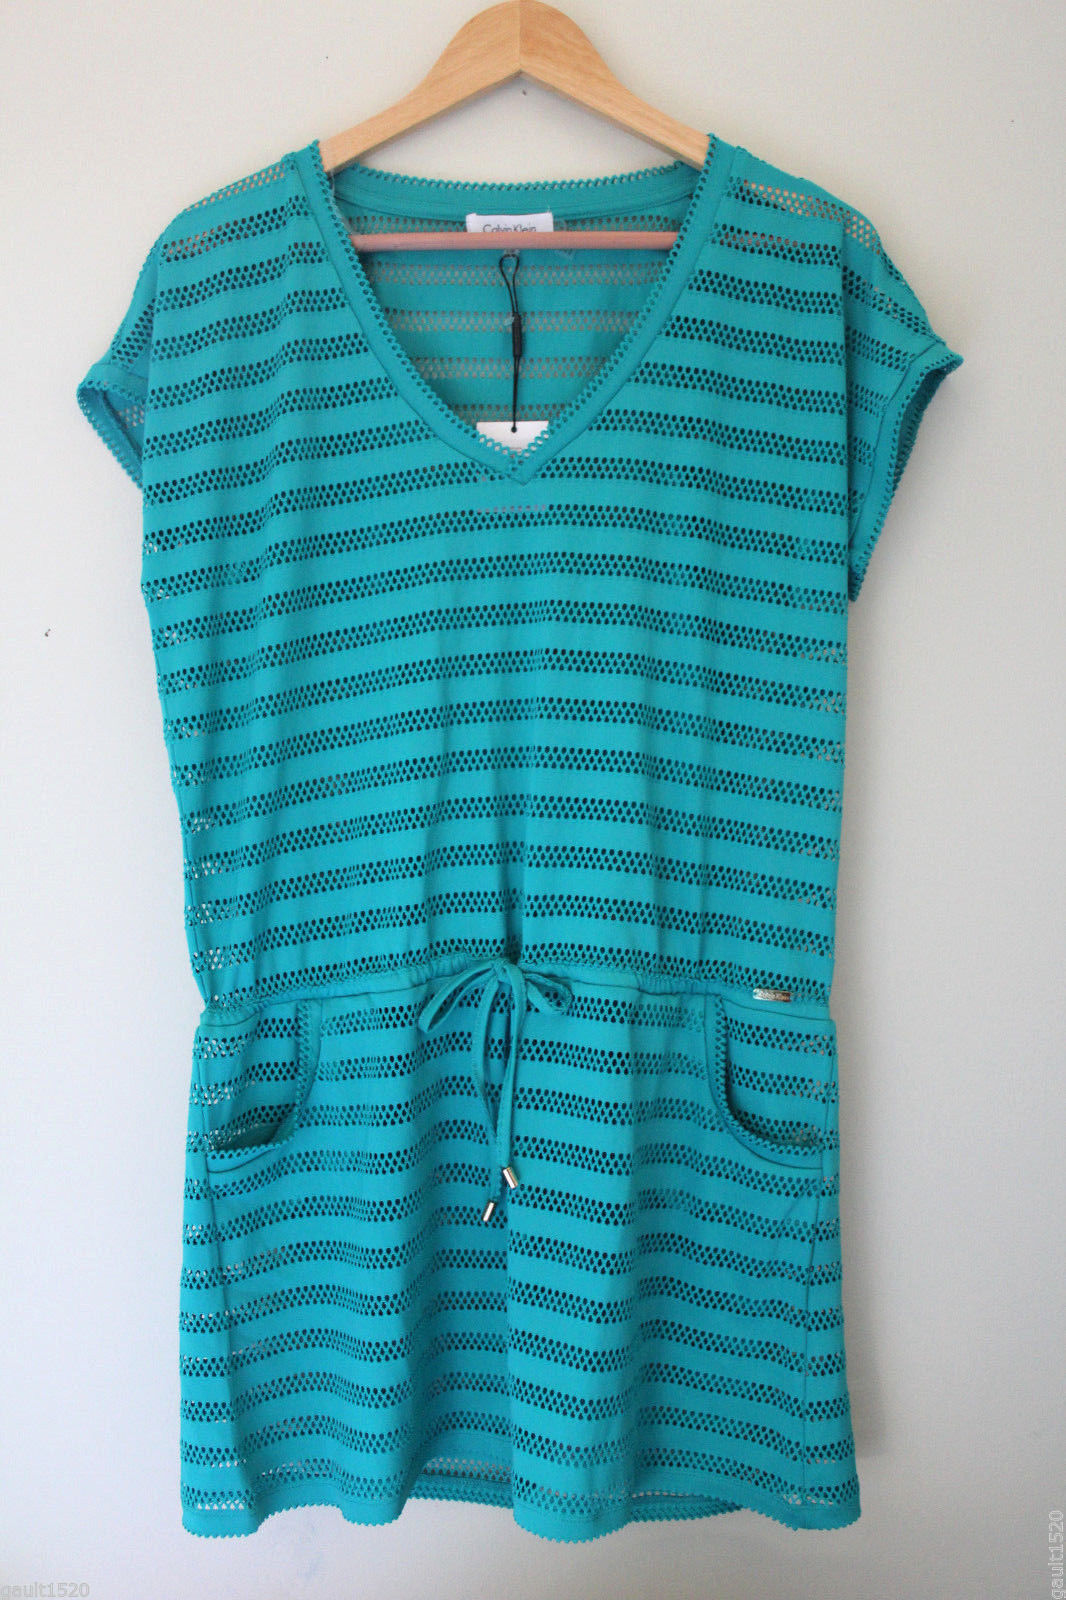 Primary image for NWT Calvin Klein Ocean Blue S. Sleeve Crochet Knit Swim Cover Up Dress S/M $78